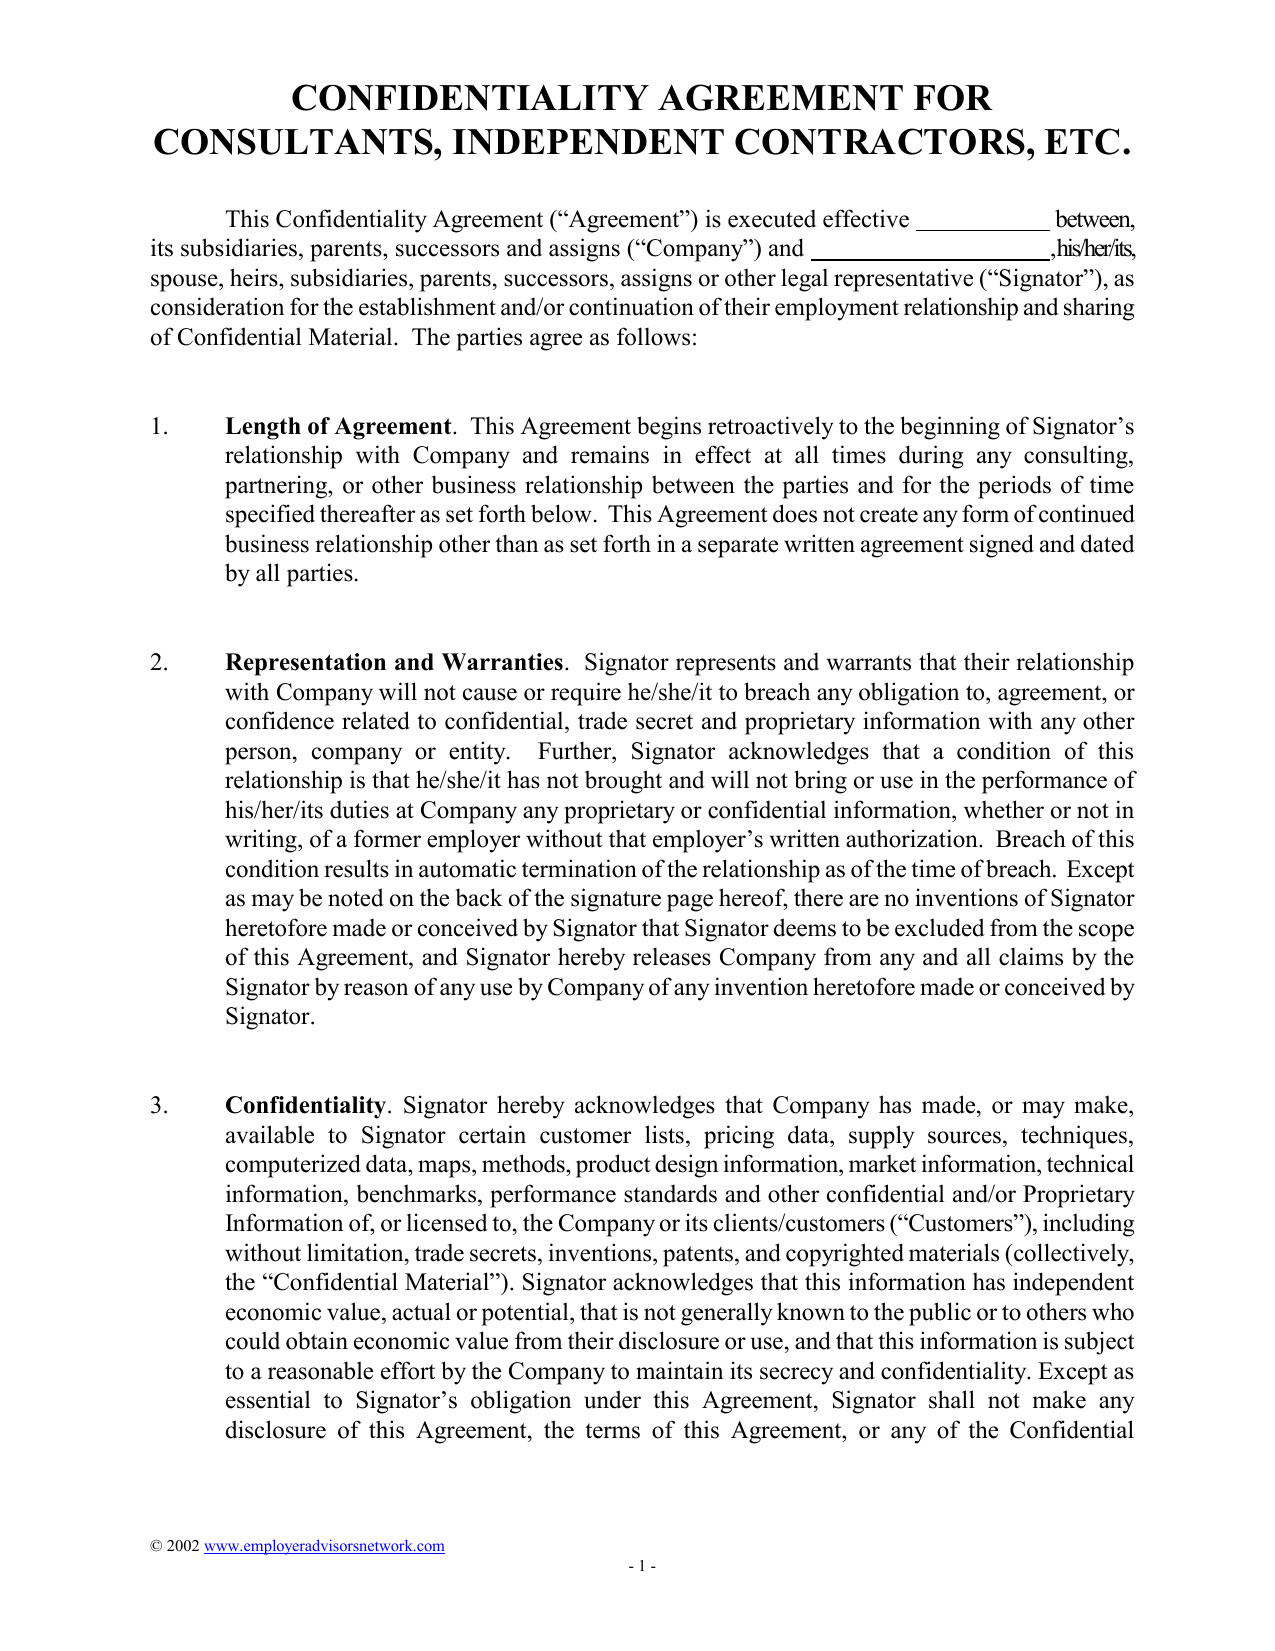 Confidentiality Agreement for Consultants Independent Contractors – Business Consulting Agreement